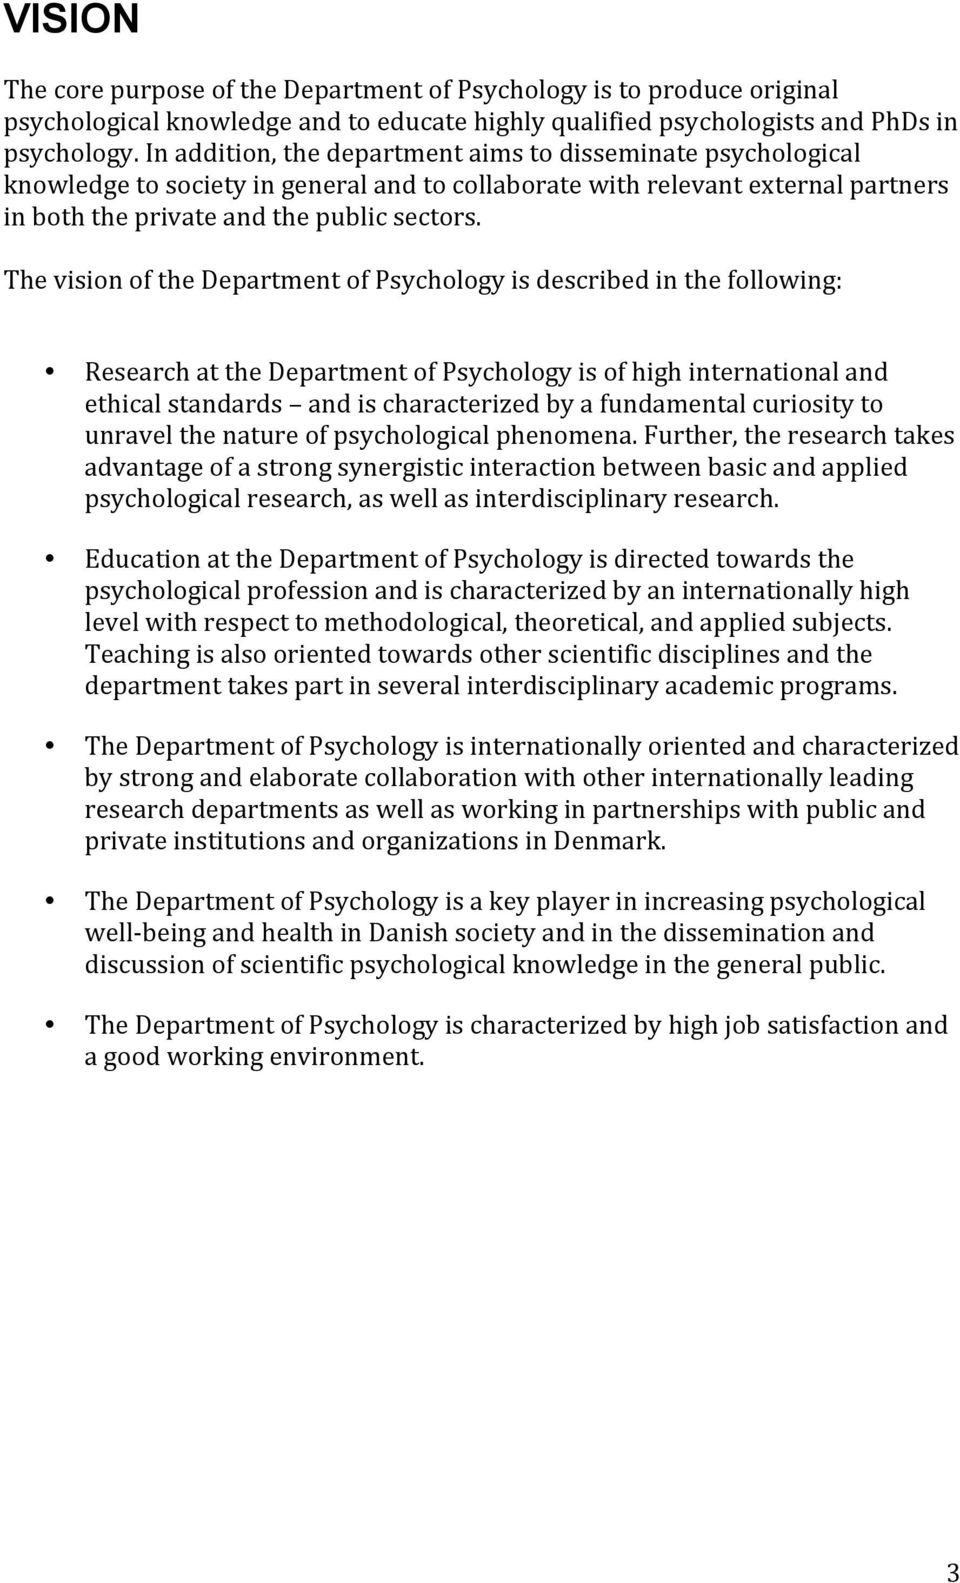 The vision of the Department of Psychology is described in the following: Research at the Department of Psychology is of high international and ethical standards and is characterized by a fundamental